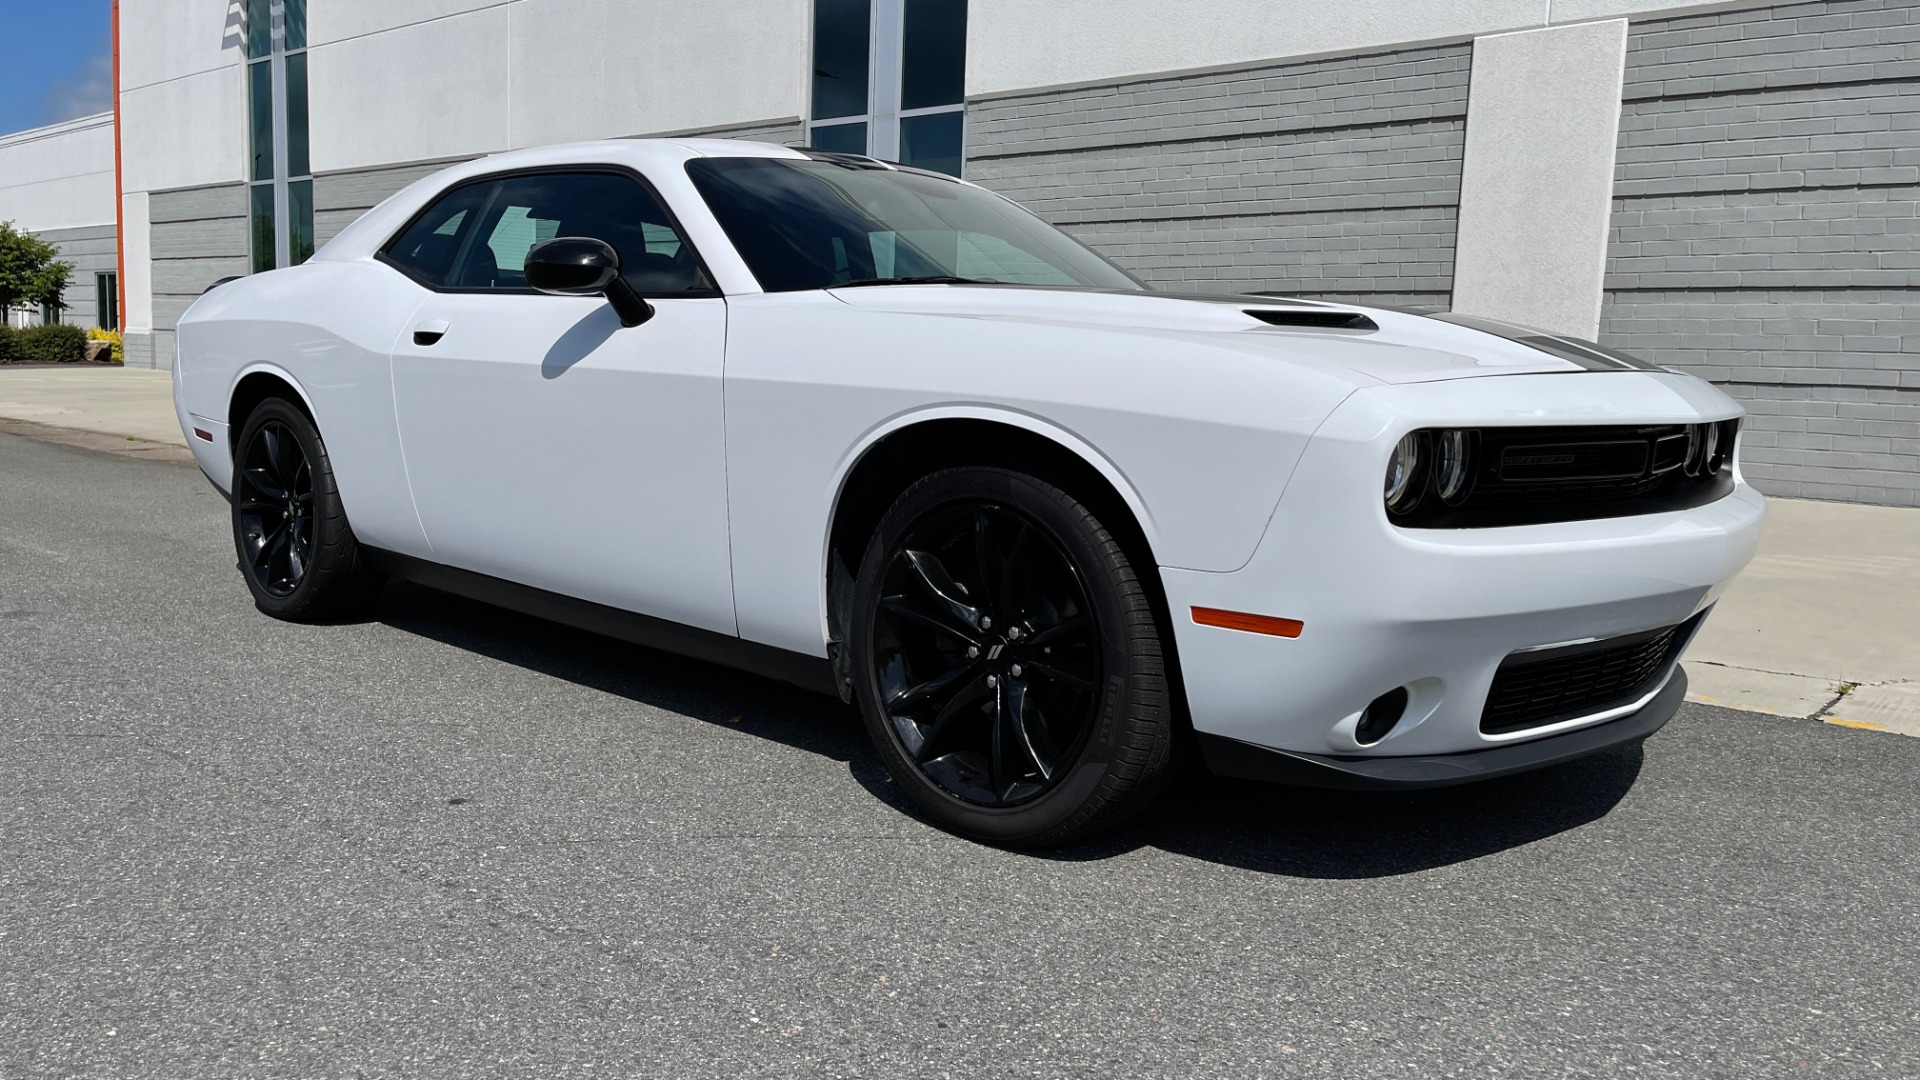 Used 2018 Dodge CHALLENGER SXT COUPE / BLACKTOP PKG / 3.6L V6 / 8-SPD AUTO / REARVIEW for sale $31,995 at Formula Imports in Charlotte NC 28227 6